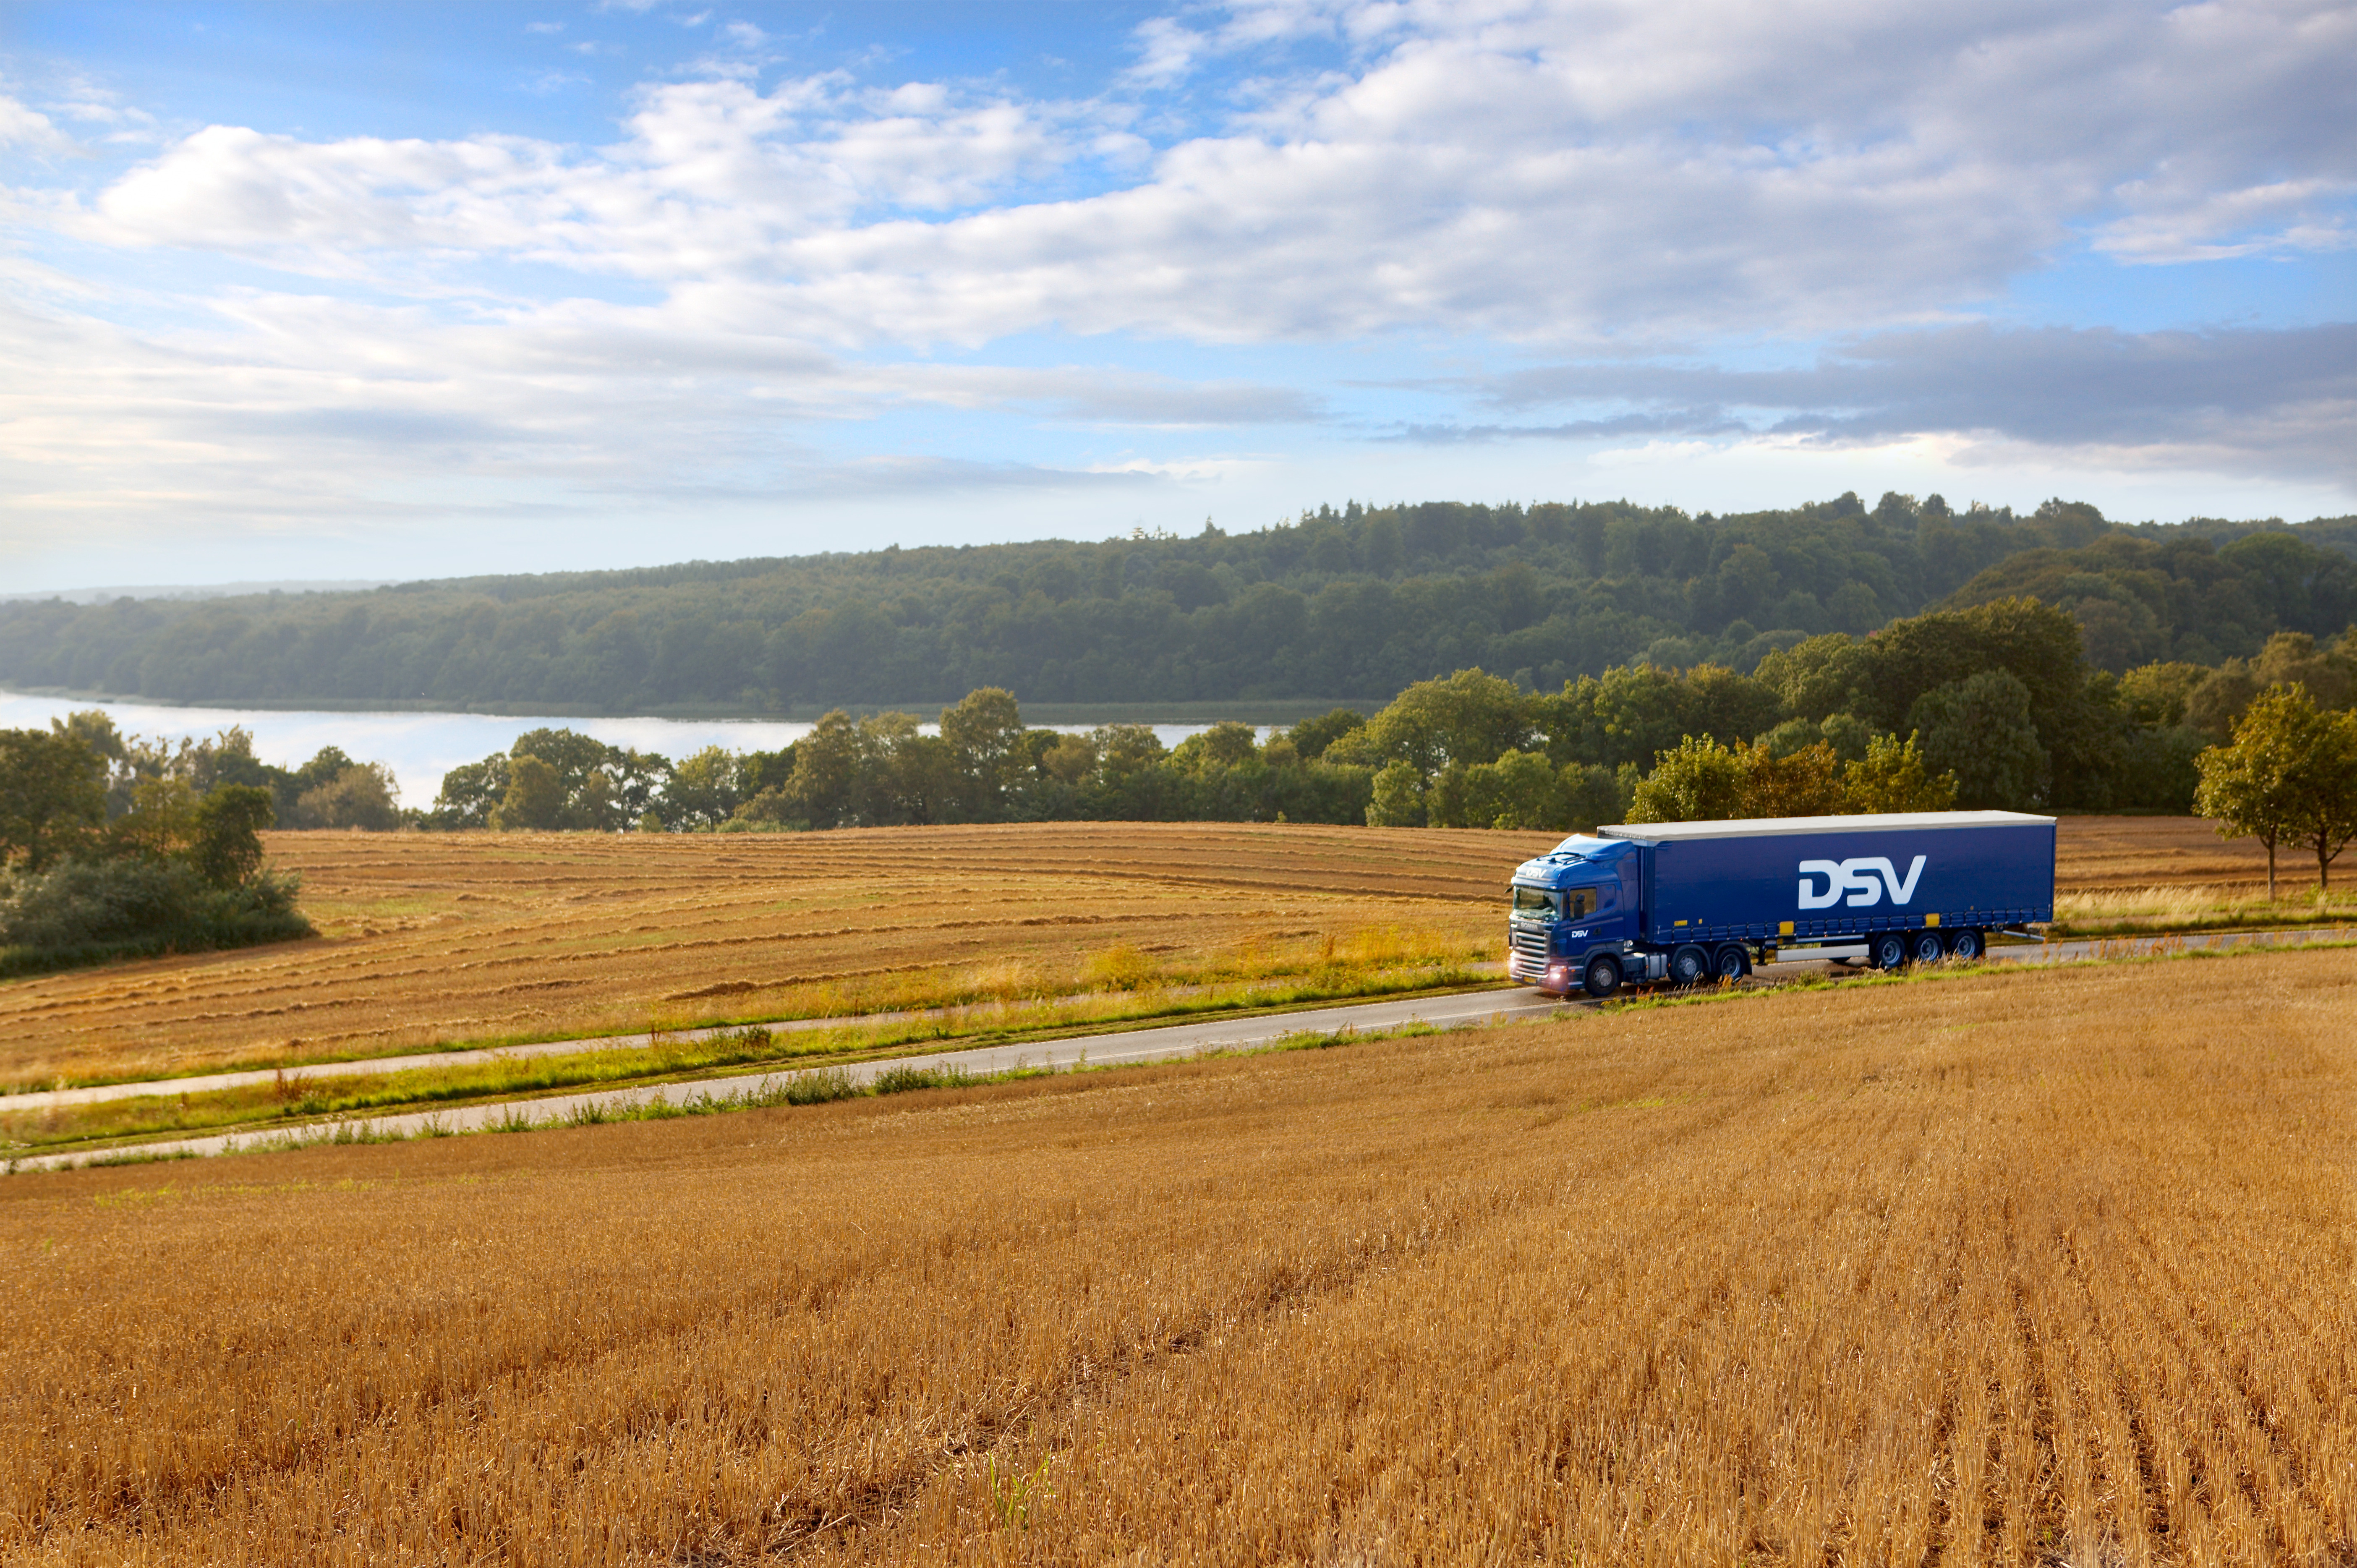 Report: DSV to omit Panalpina from its company name